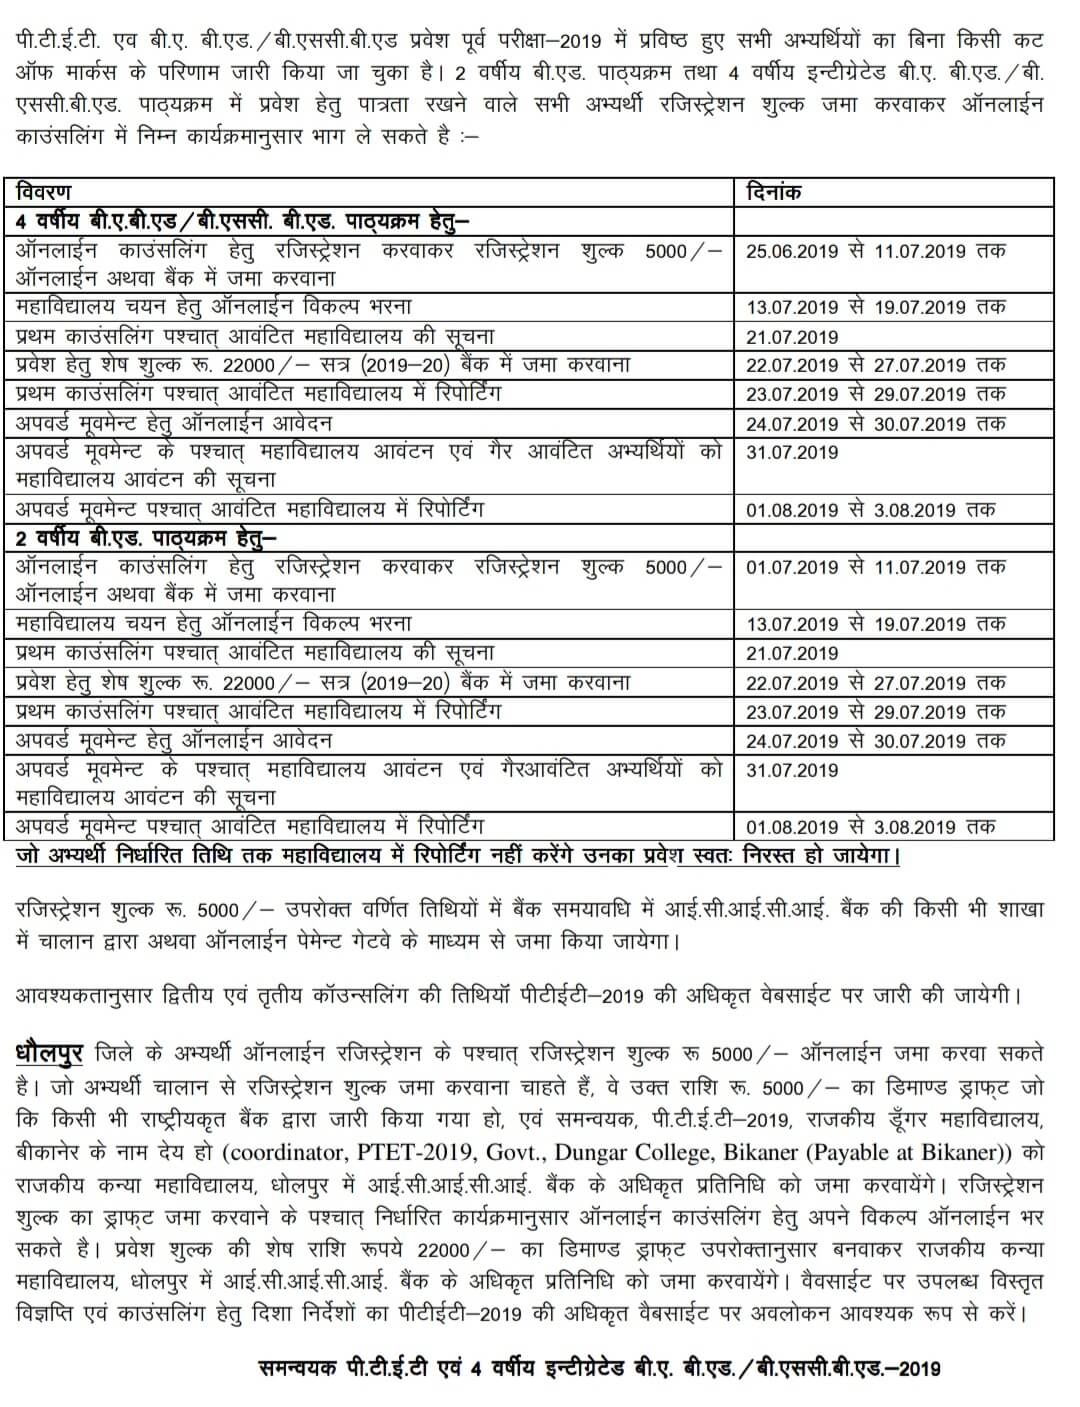 PTET Counselling Form 2019